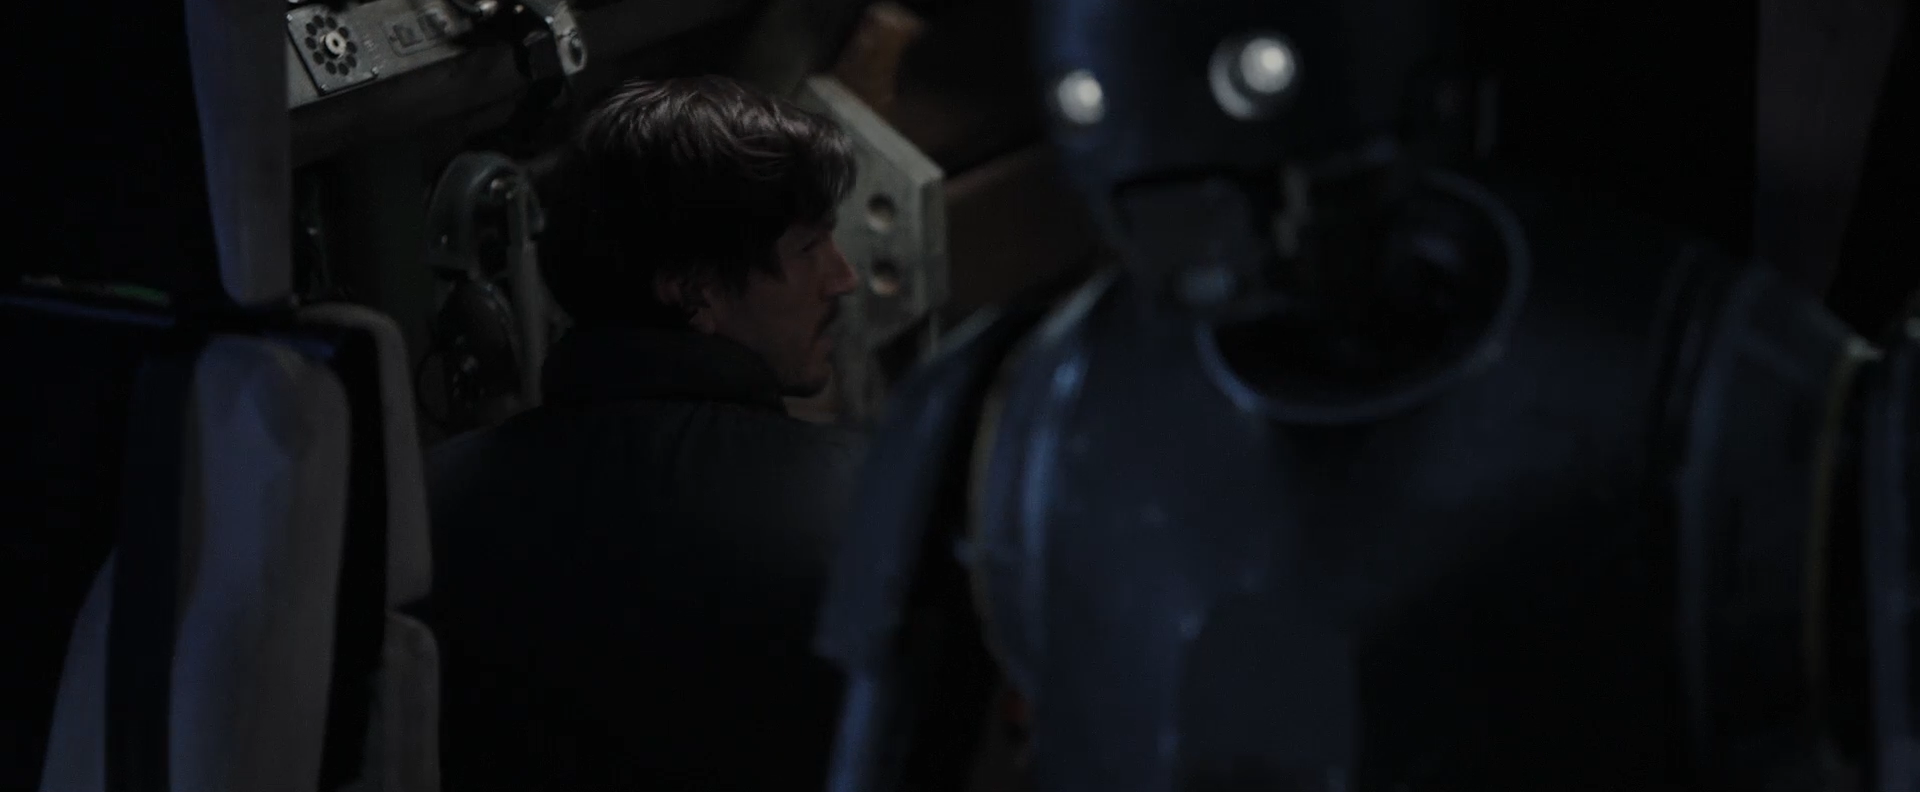 Rogue_One_A_Star_Wars_Story_t00.mp4.00_53_35_22.Still004.png